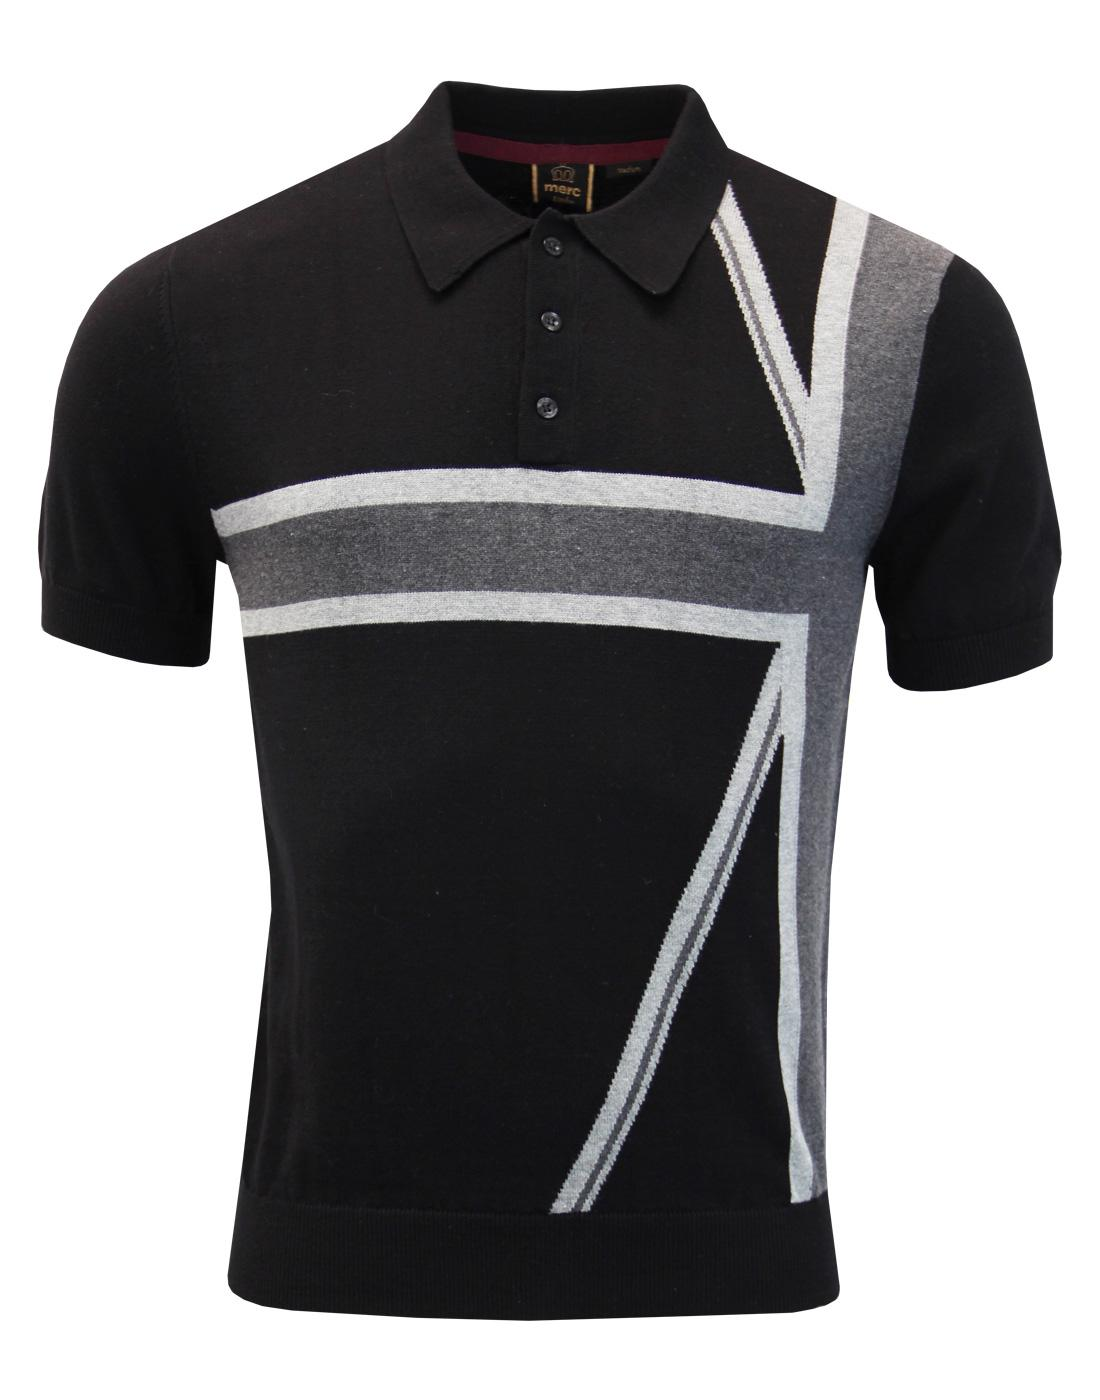 Castle MERC Retro Mod Union Jack Knit Polo Top (B)